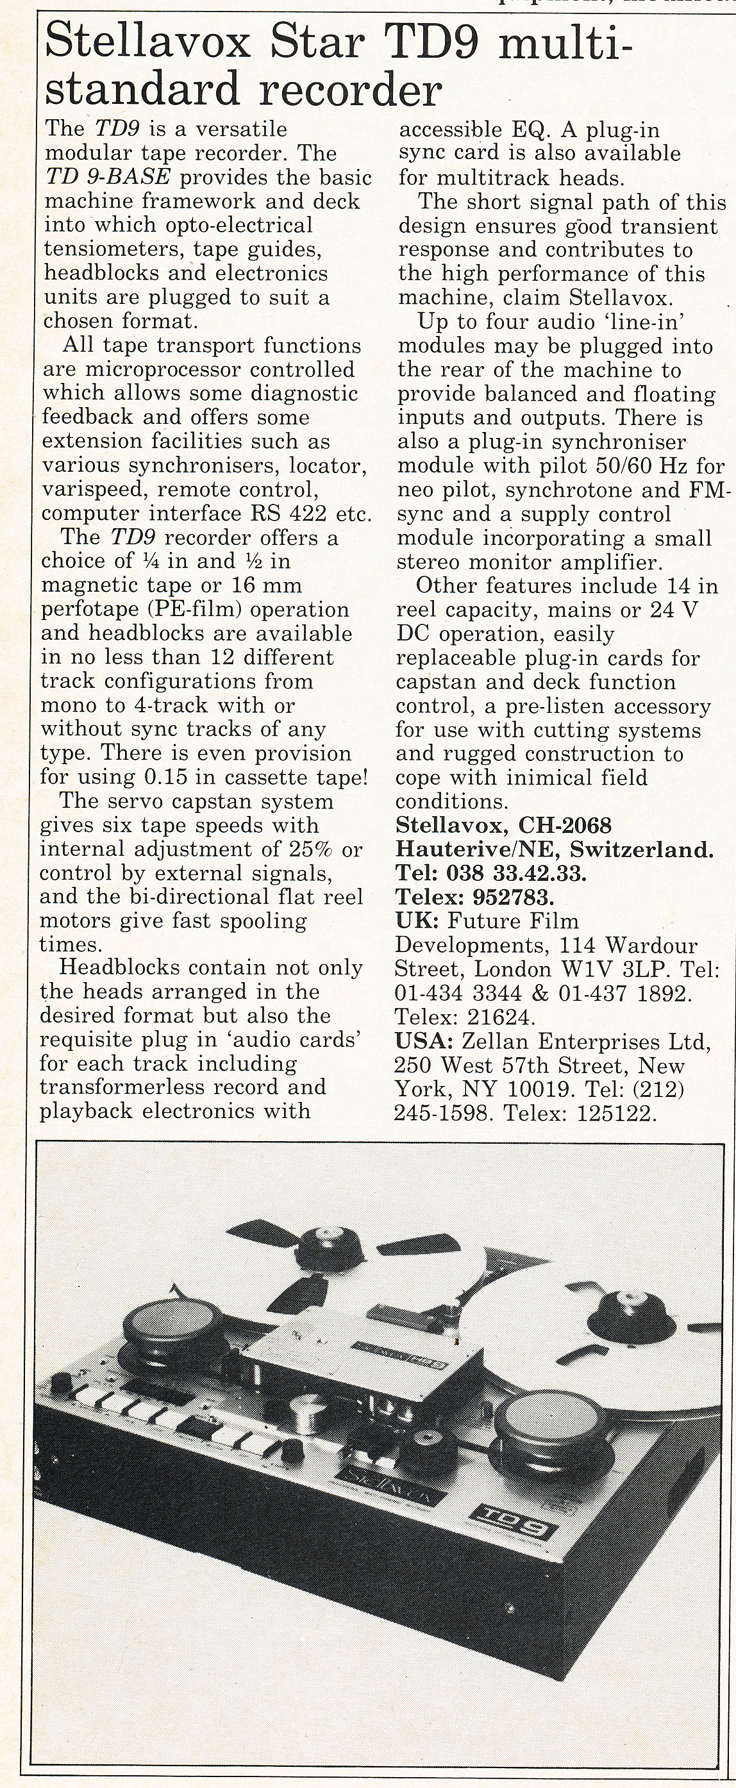 1985 ad for the StellaVox TD9 reel to reel tape recorder in Reel2ReelTexas.com's vintage recording collection